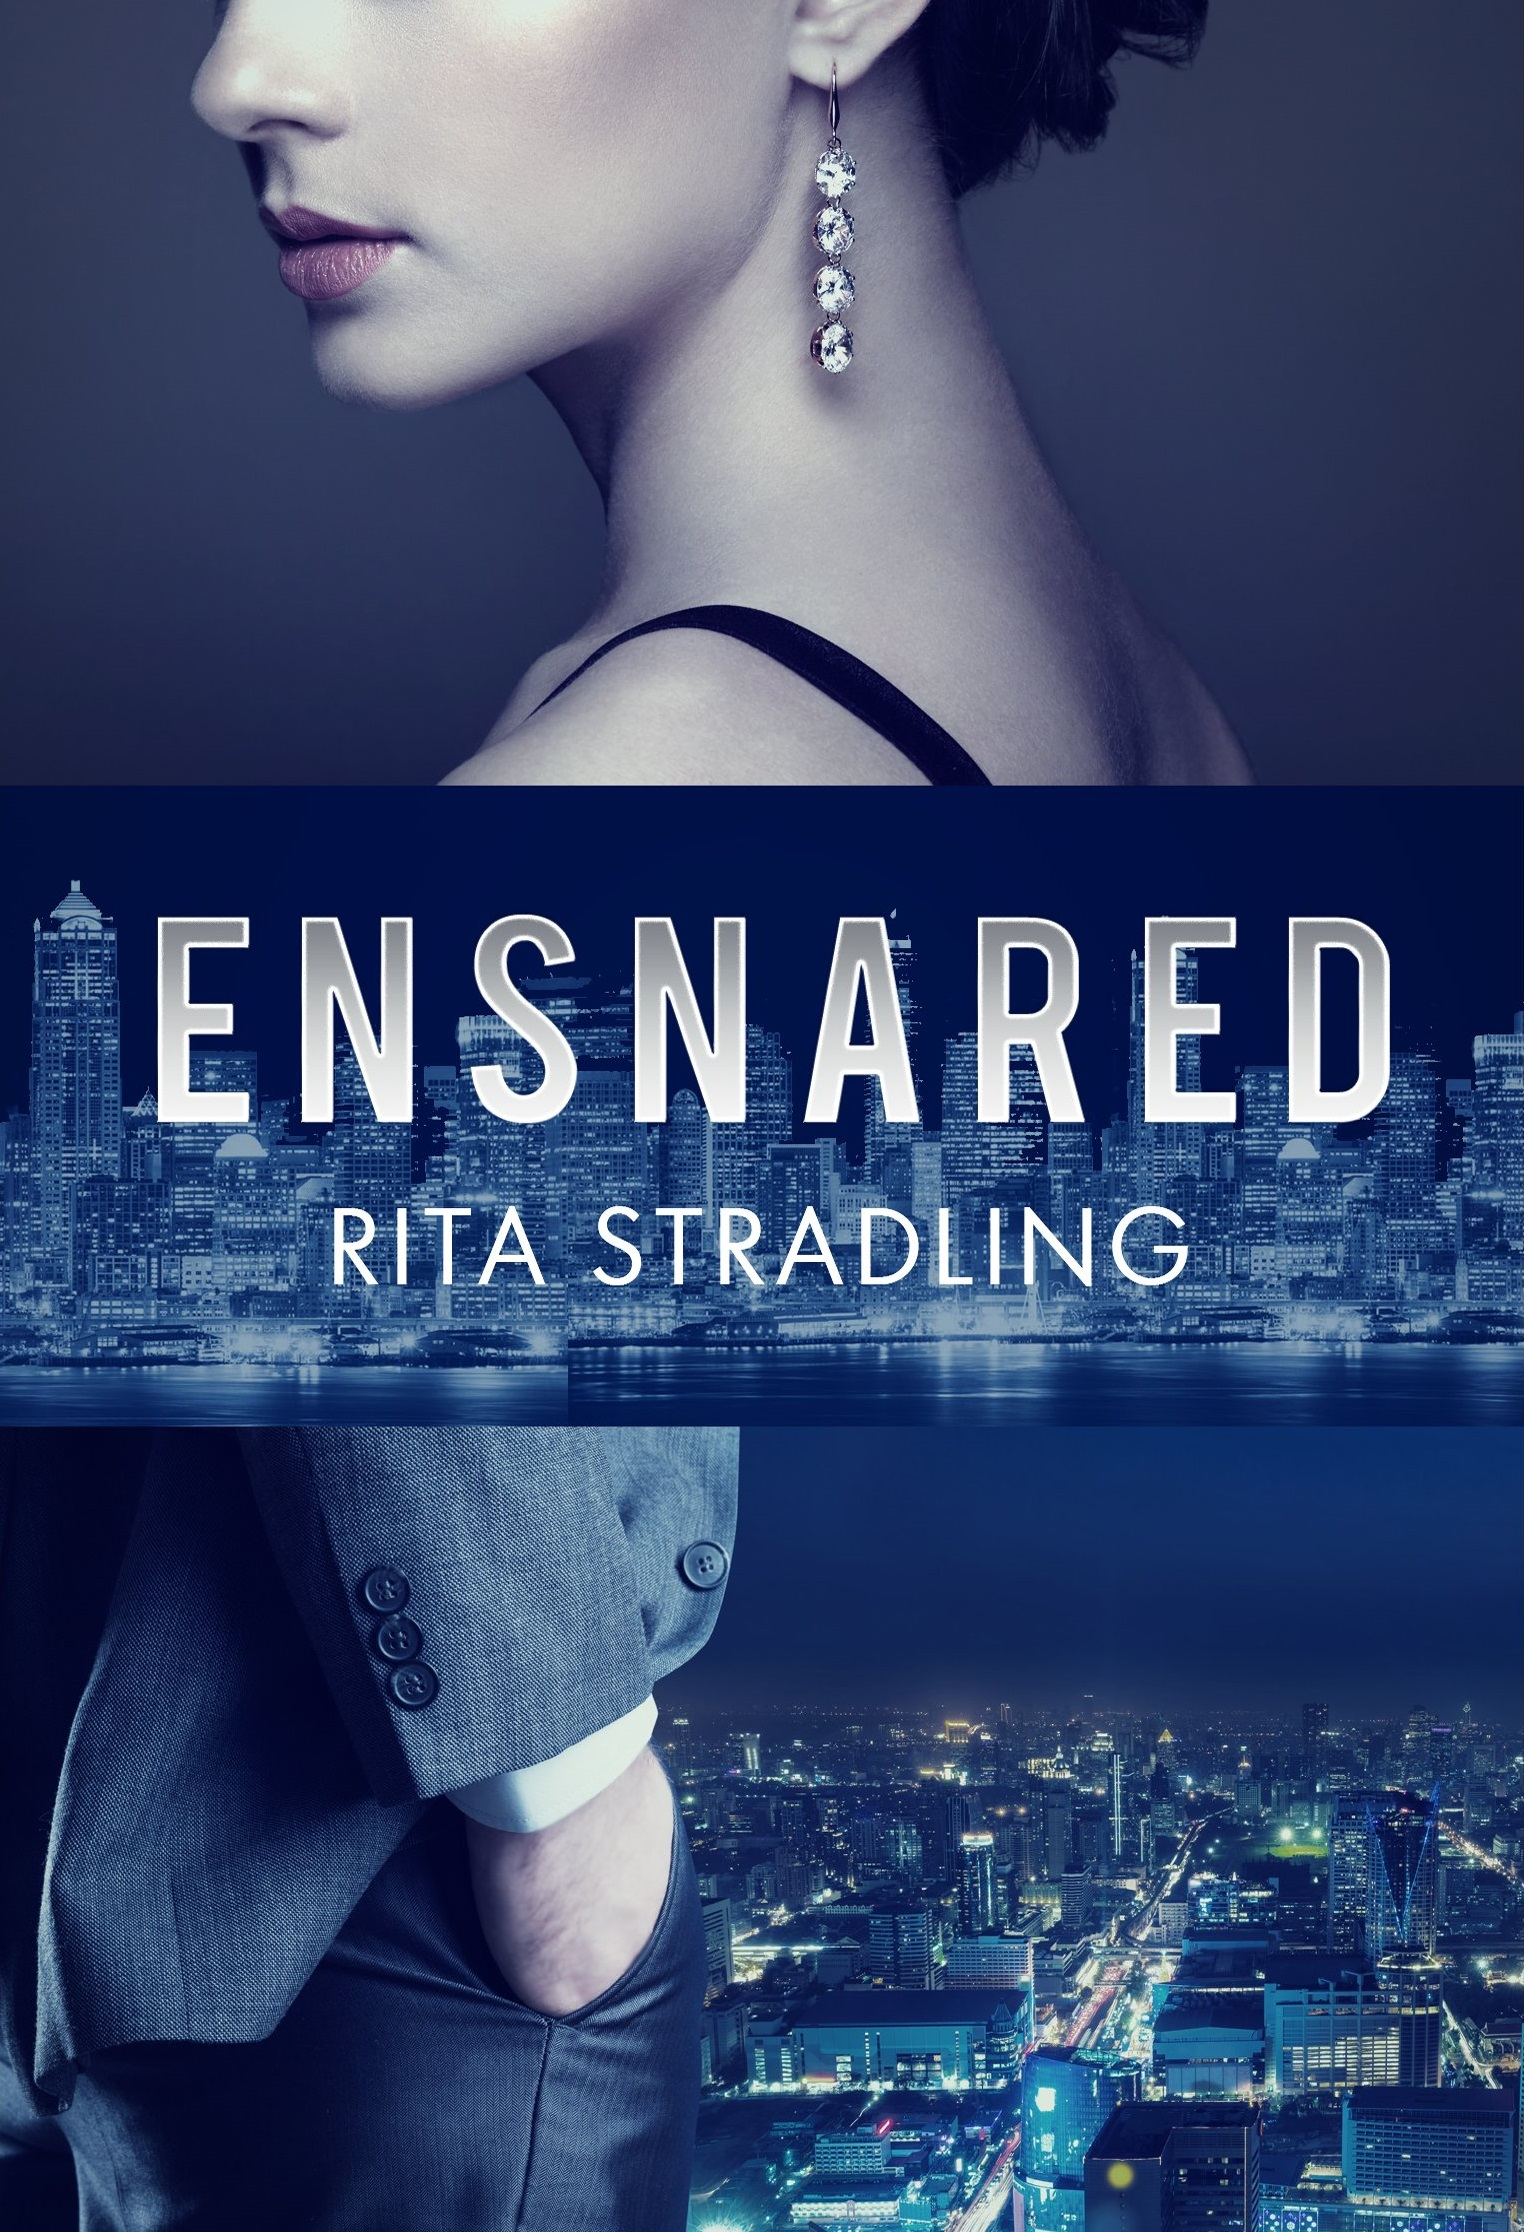 Ensnared